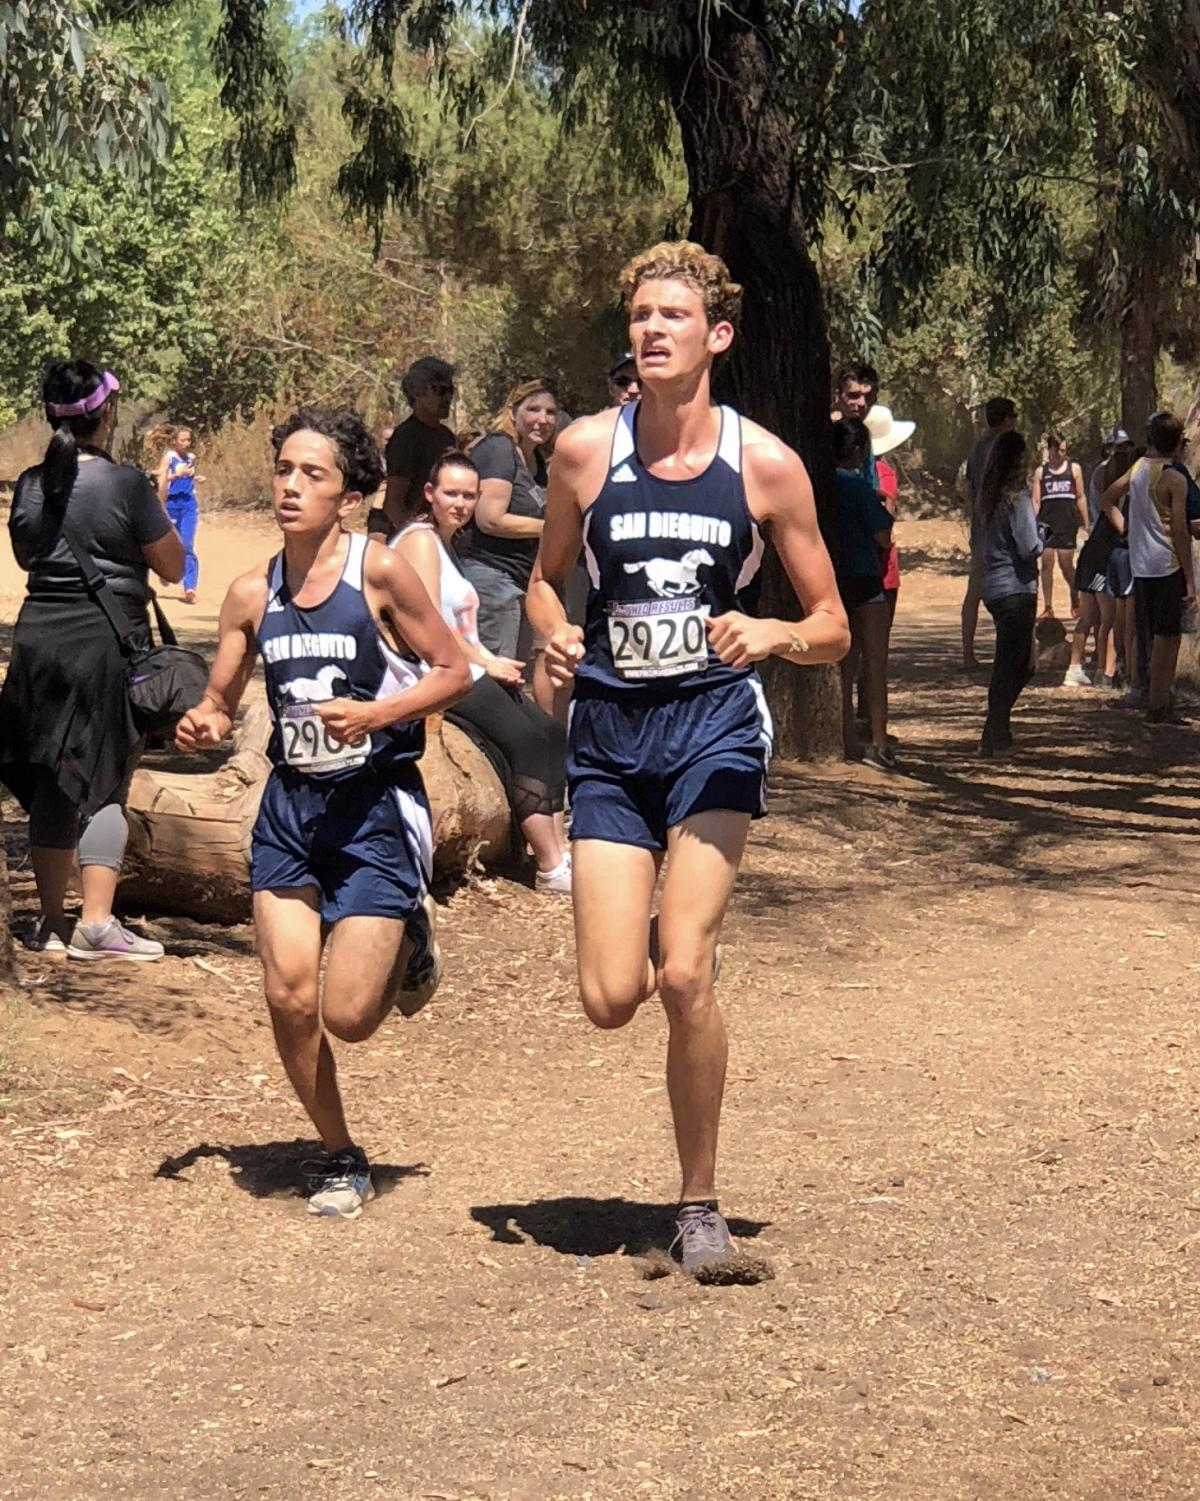 The Mustang cross country team competes in first meet of the season.